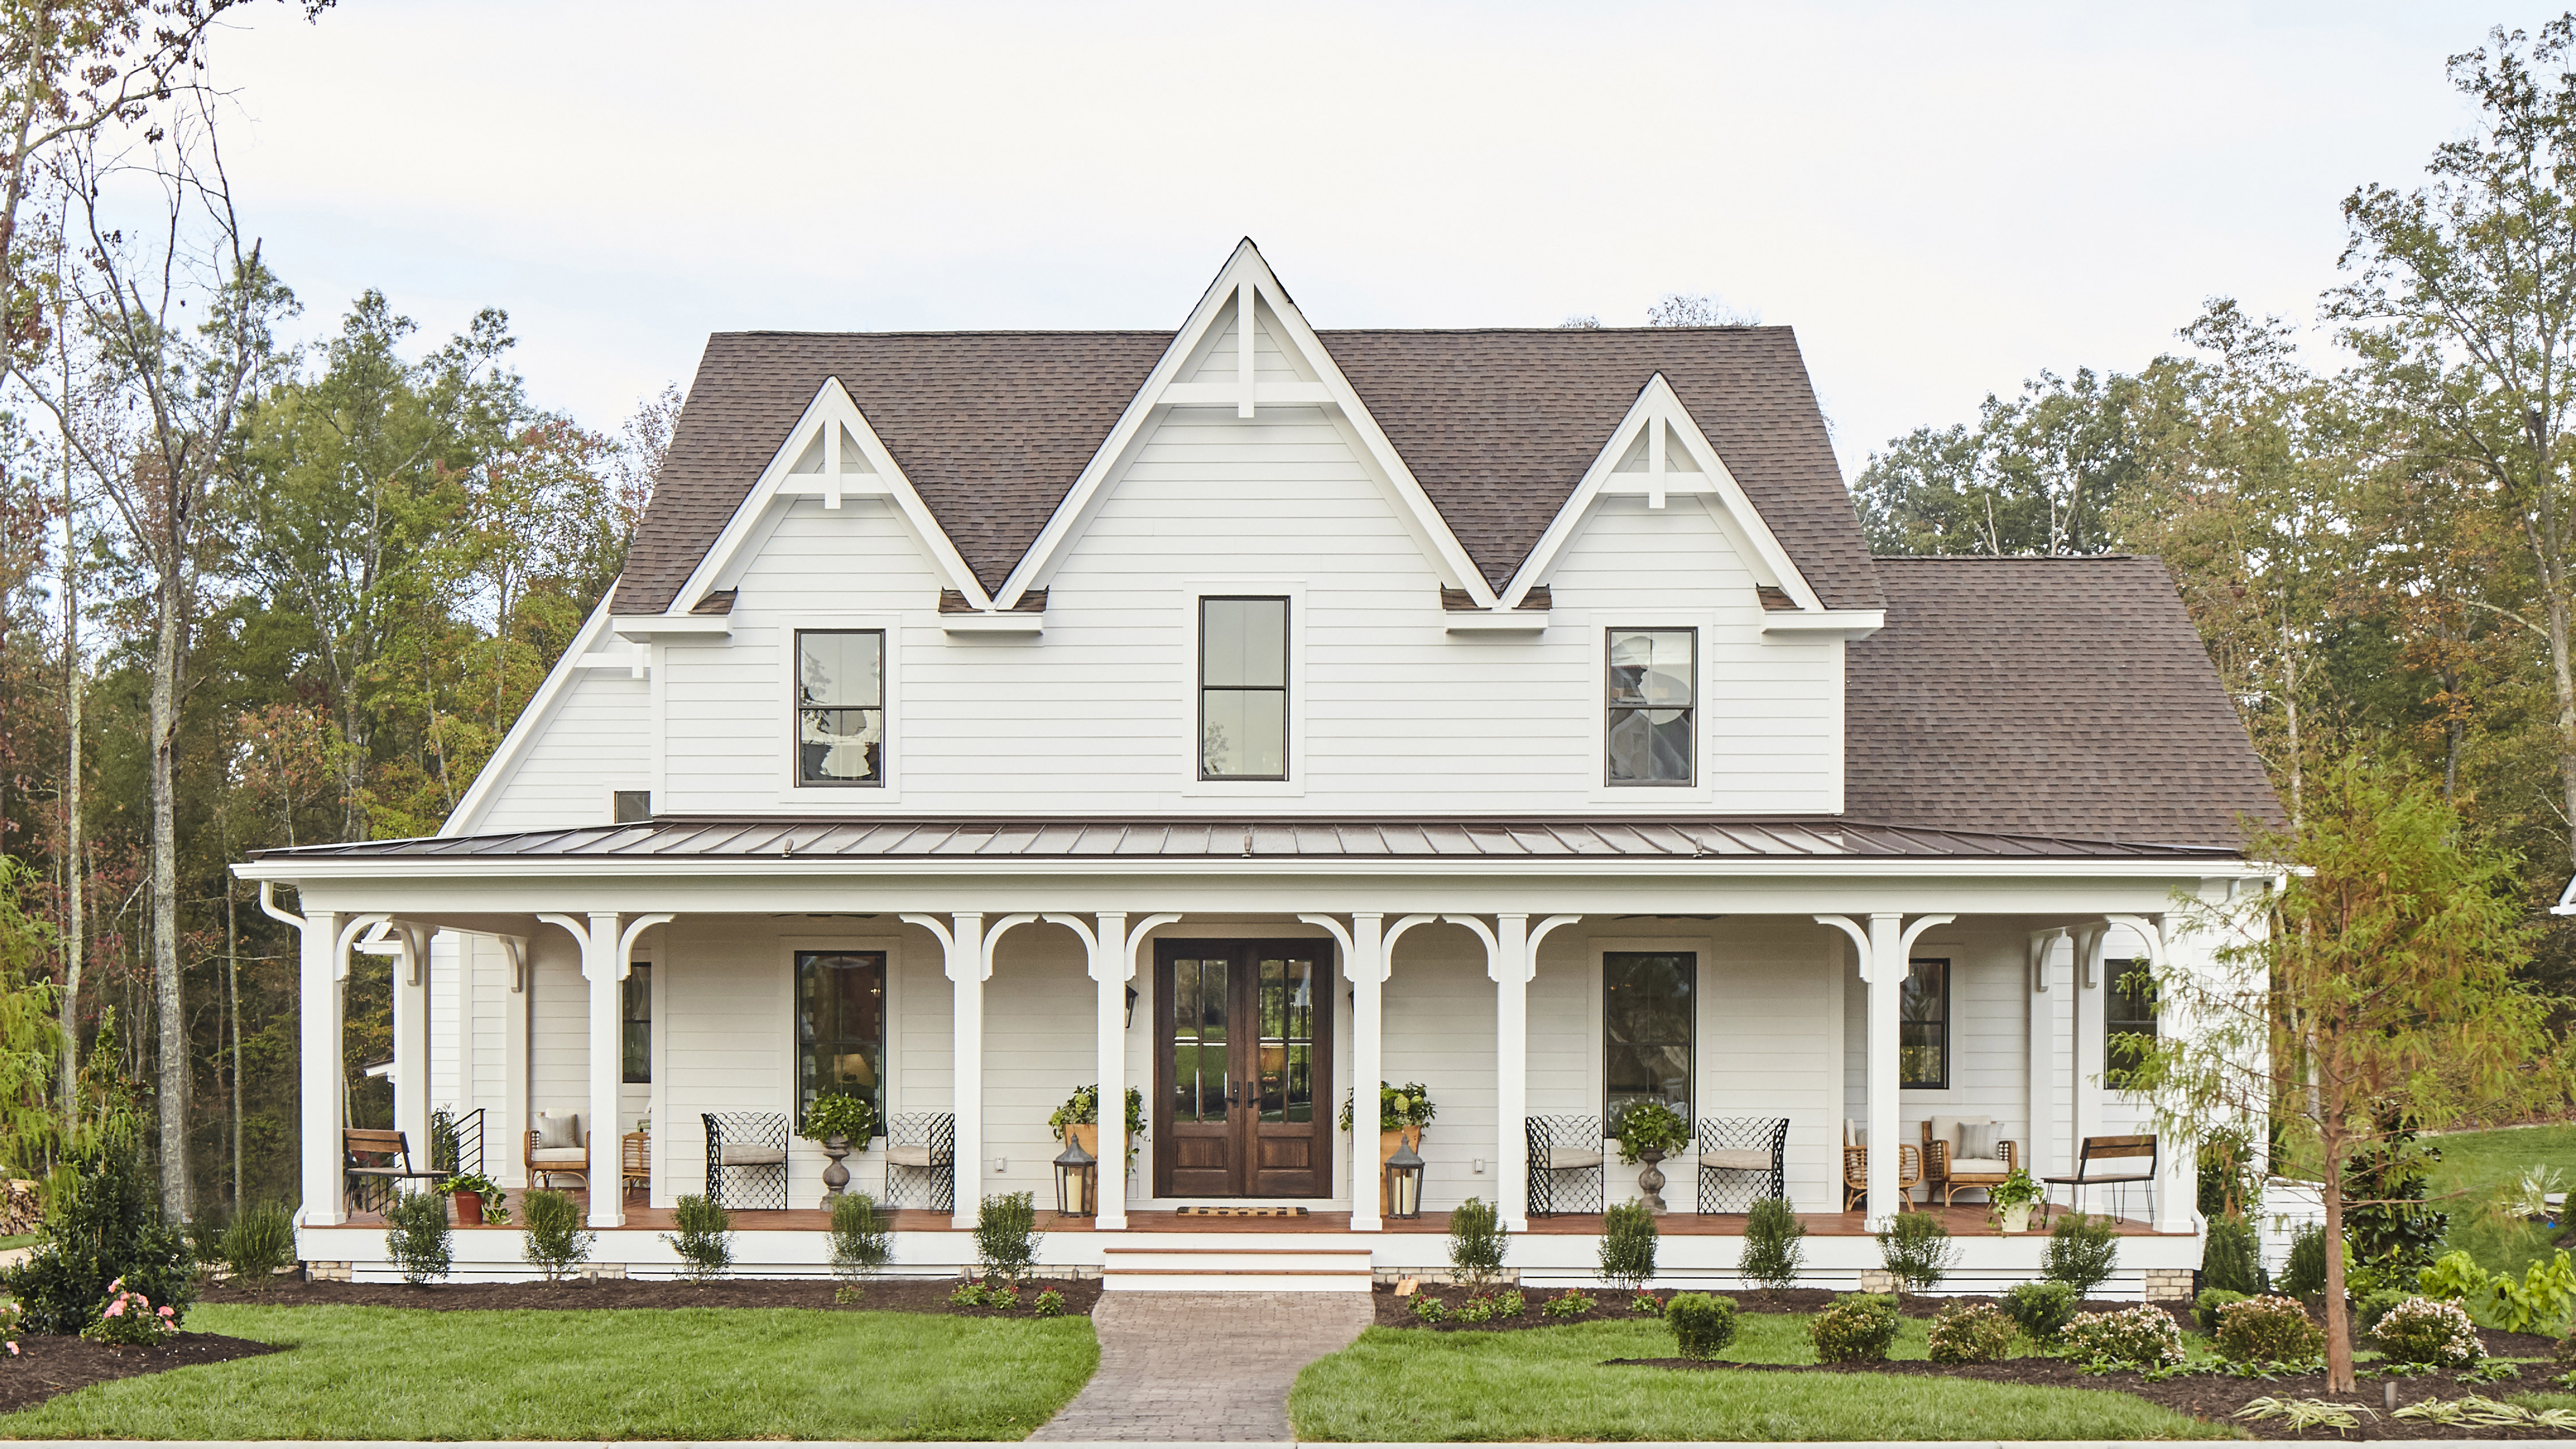 Southern Living House Plans | Find Floor Plans, Home Designs, and ...